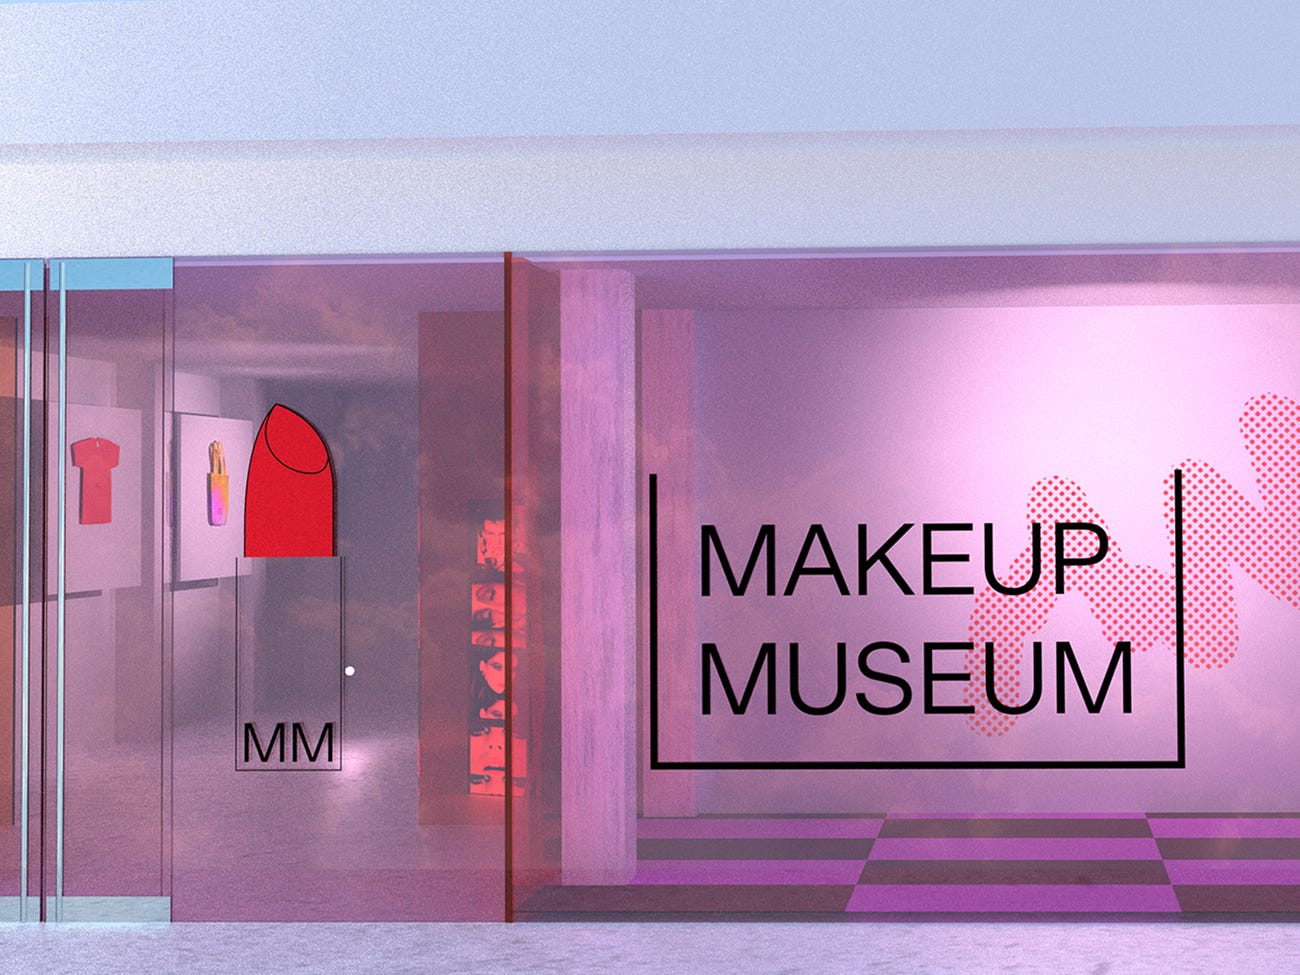 make-up museum to open in new York in 2020